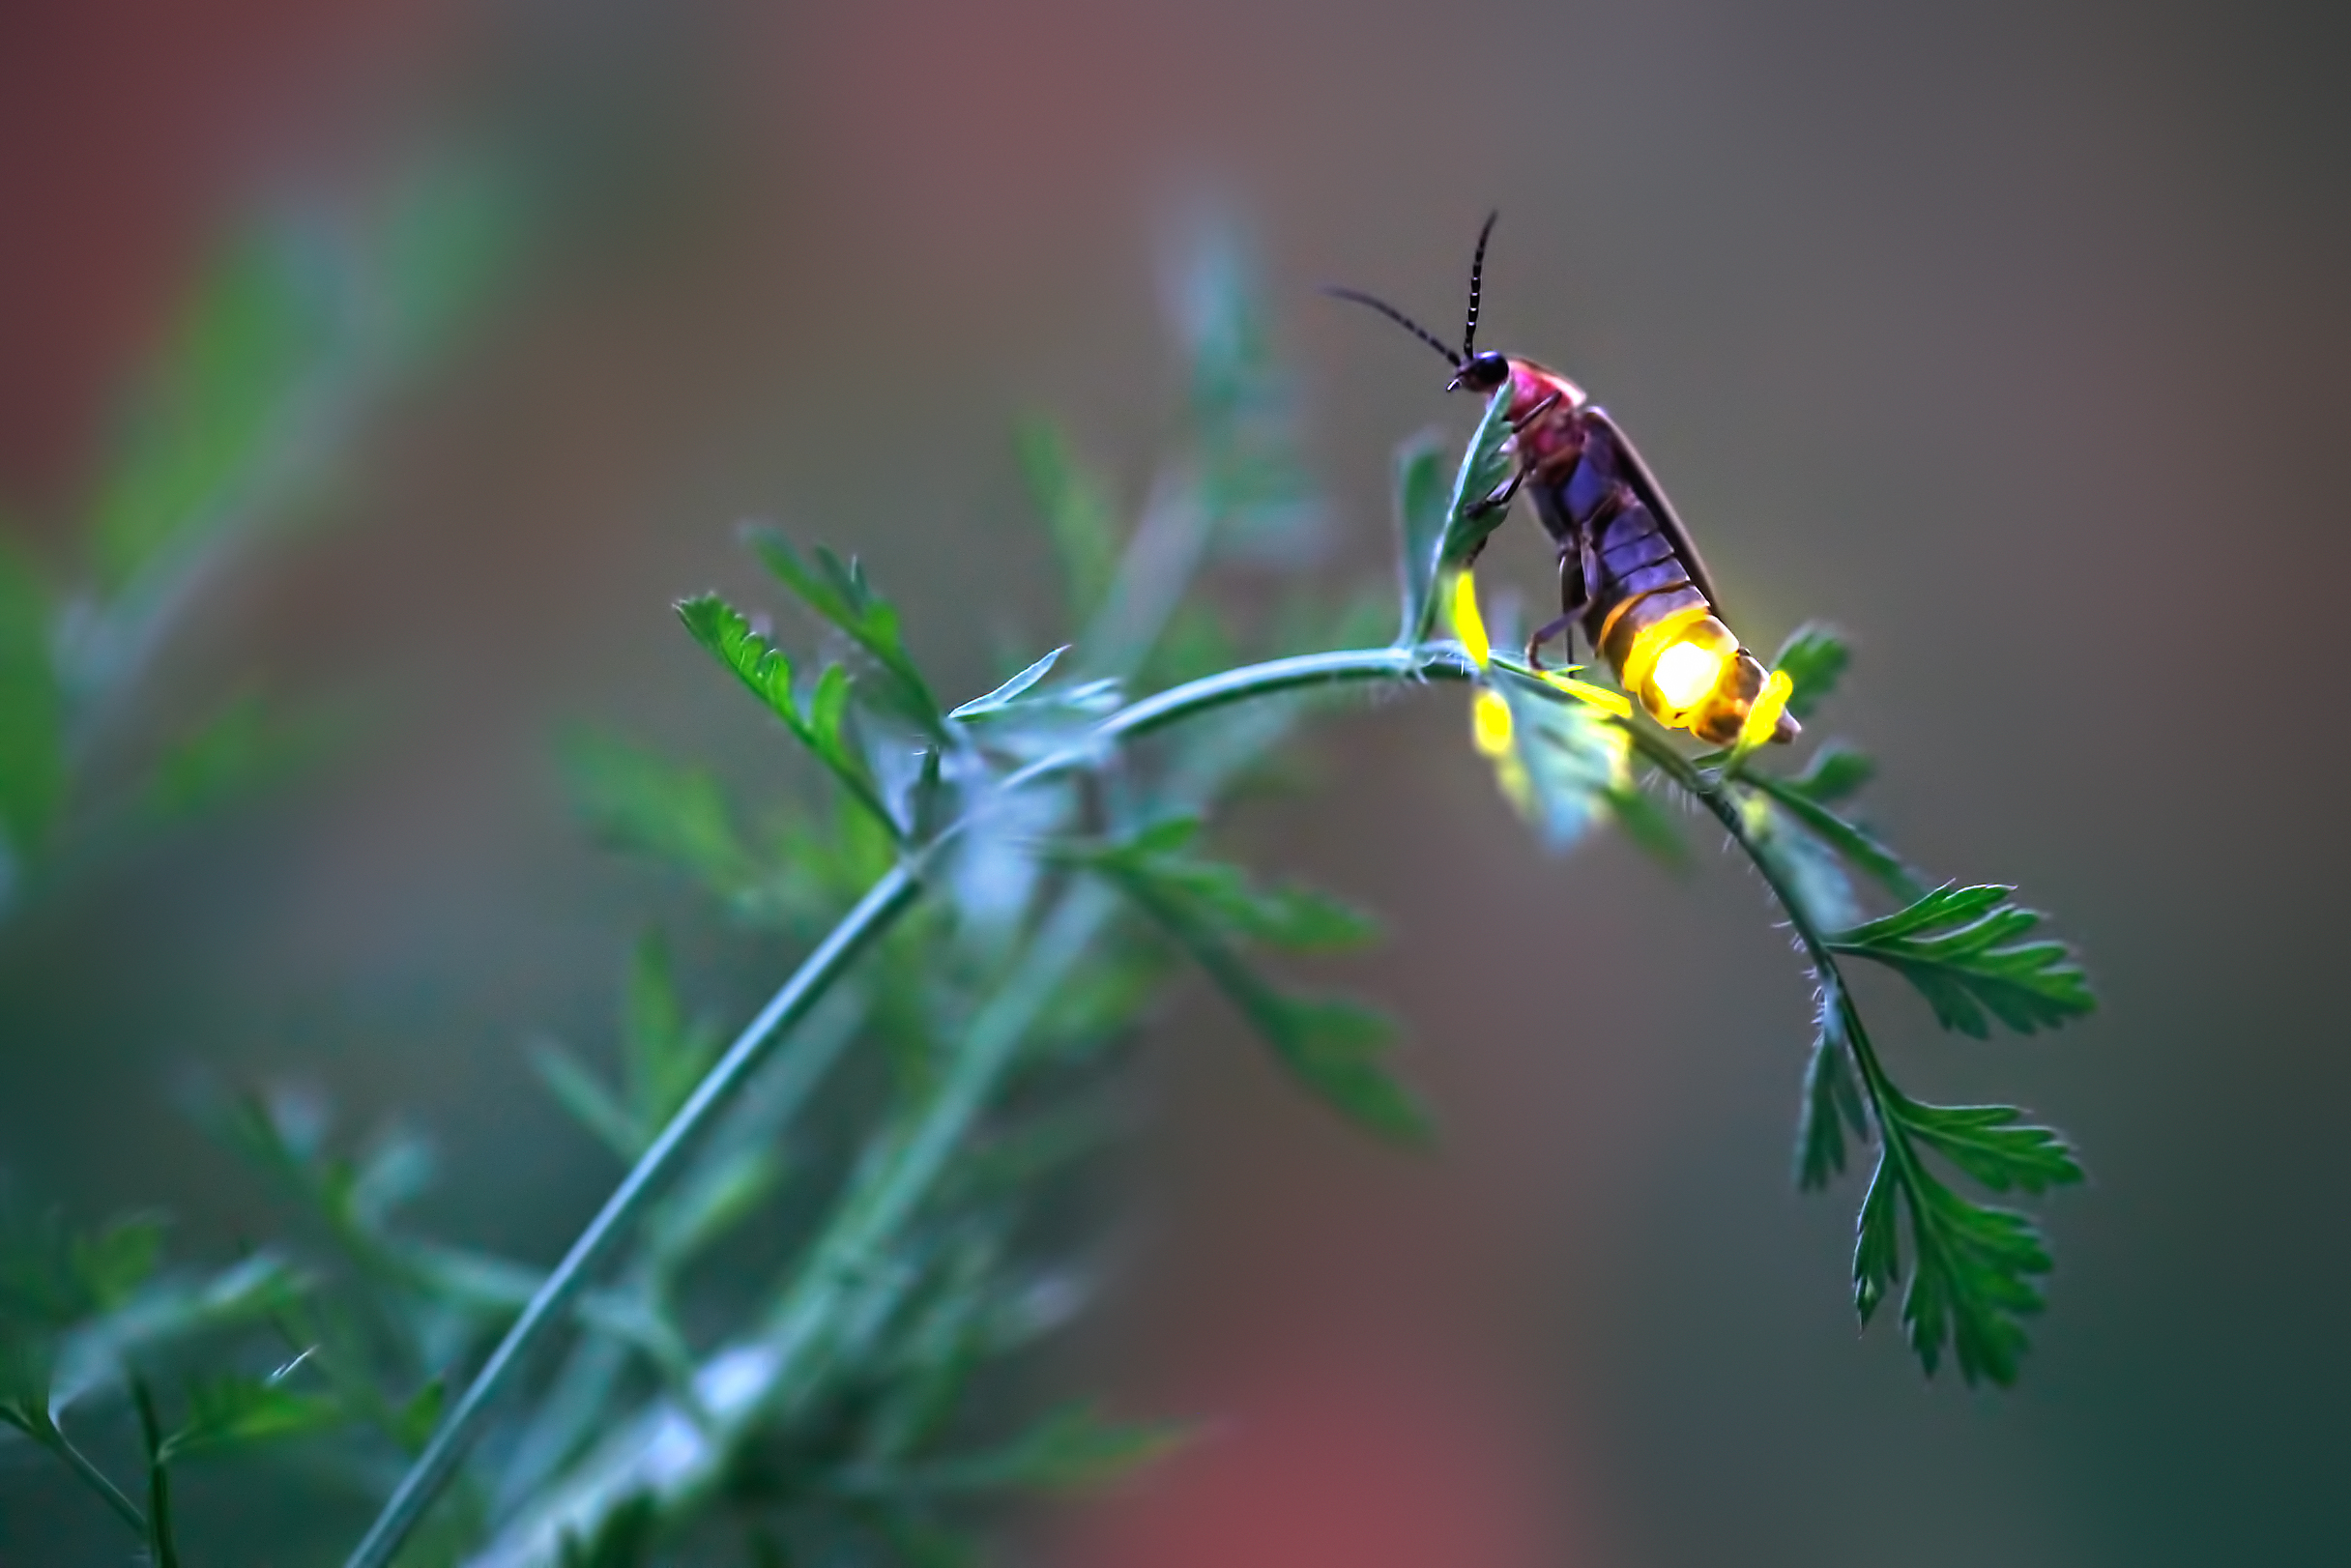 A female firefly flashes from her perch on the tip of a curving twig